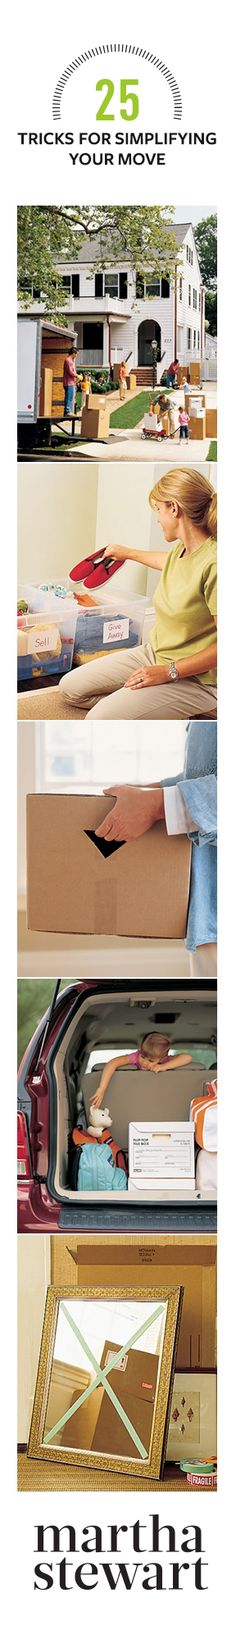 Sold your #home and now have to move? Here are 25 #tips and tricks for simplifying your #move.